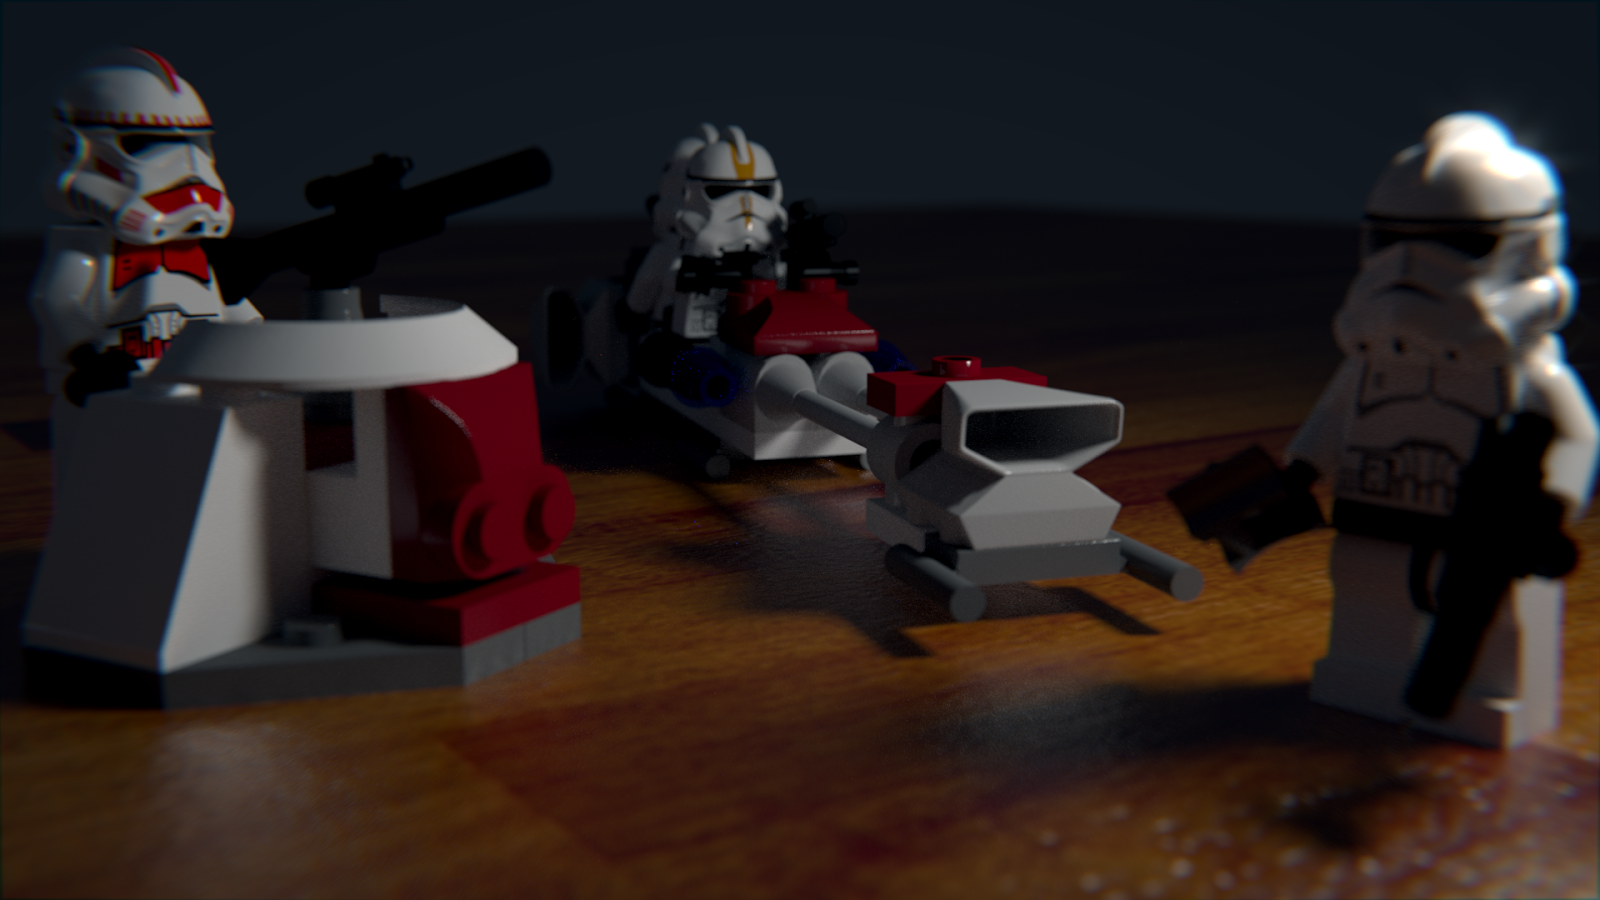 Lego Star Wars Blender Render